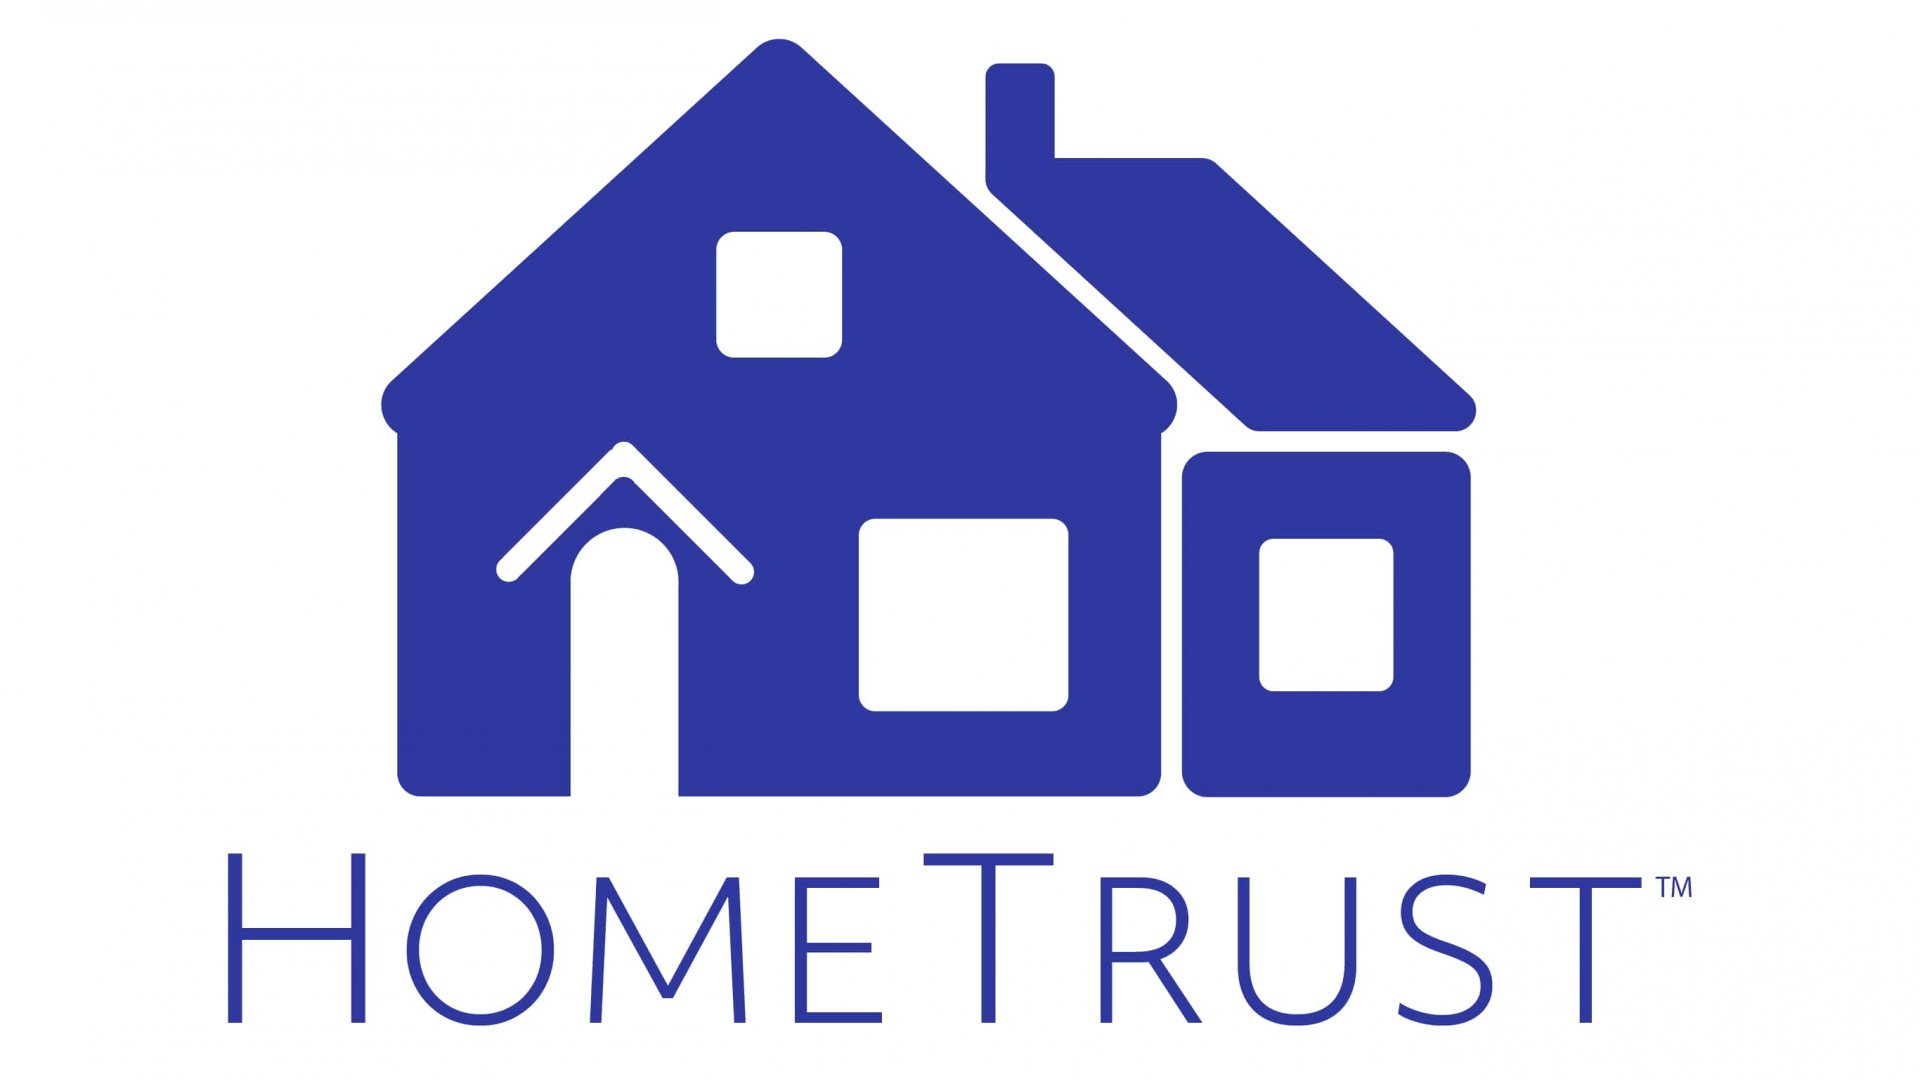 HomeTrust Wholesale logo